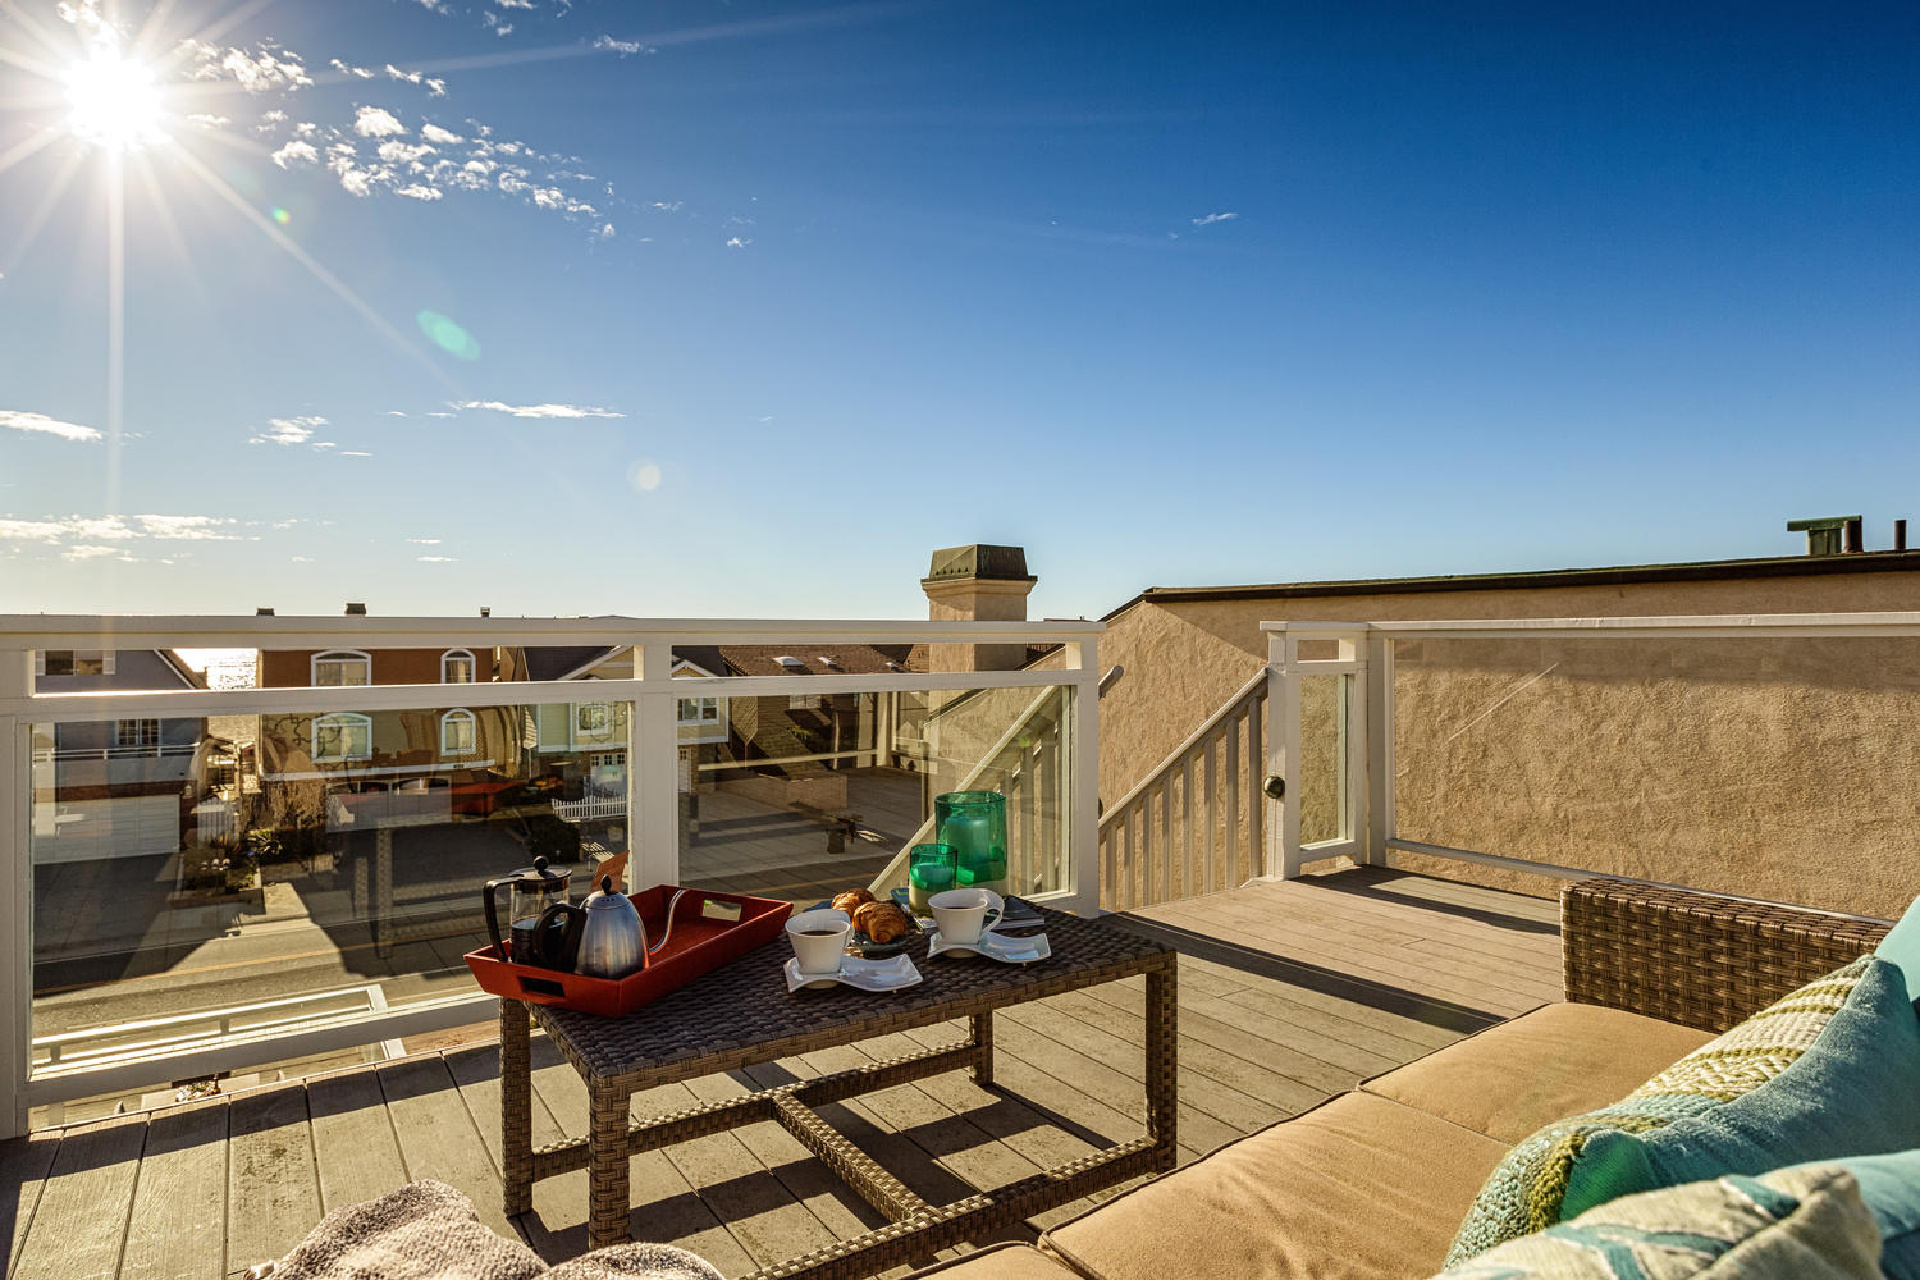 http://www.addressrealestate.com/media/images/blogs/38/2/b_23-1408-ocean-dr-oxnard-ca-93035-mls-size-023-17-rooftop-patio-1500x1000-72dpi.jpg